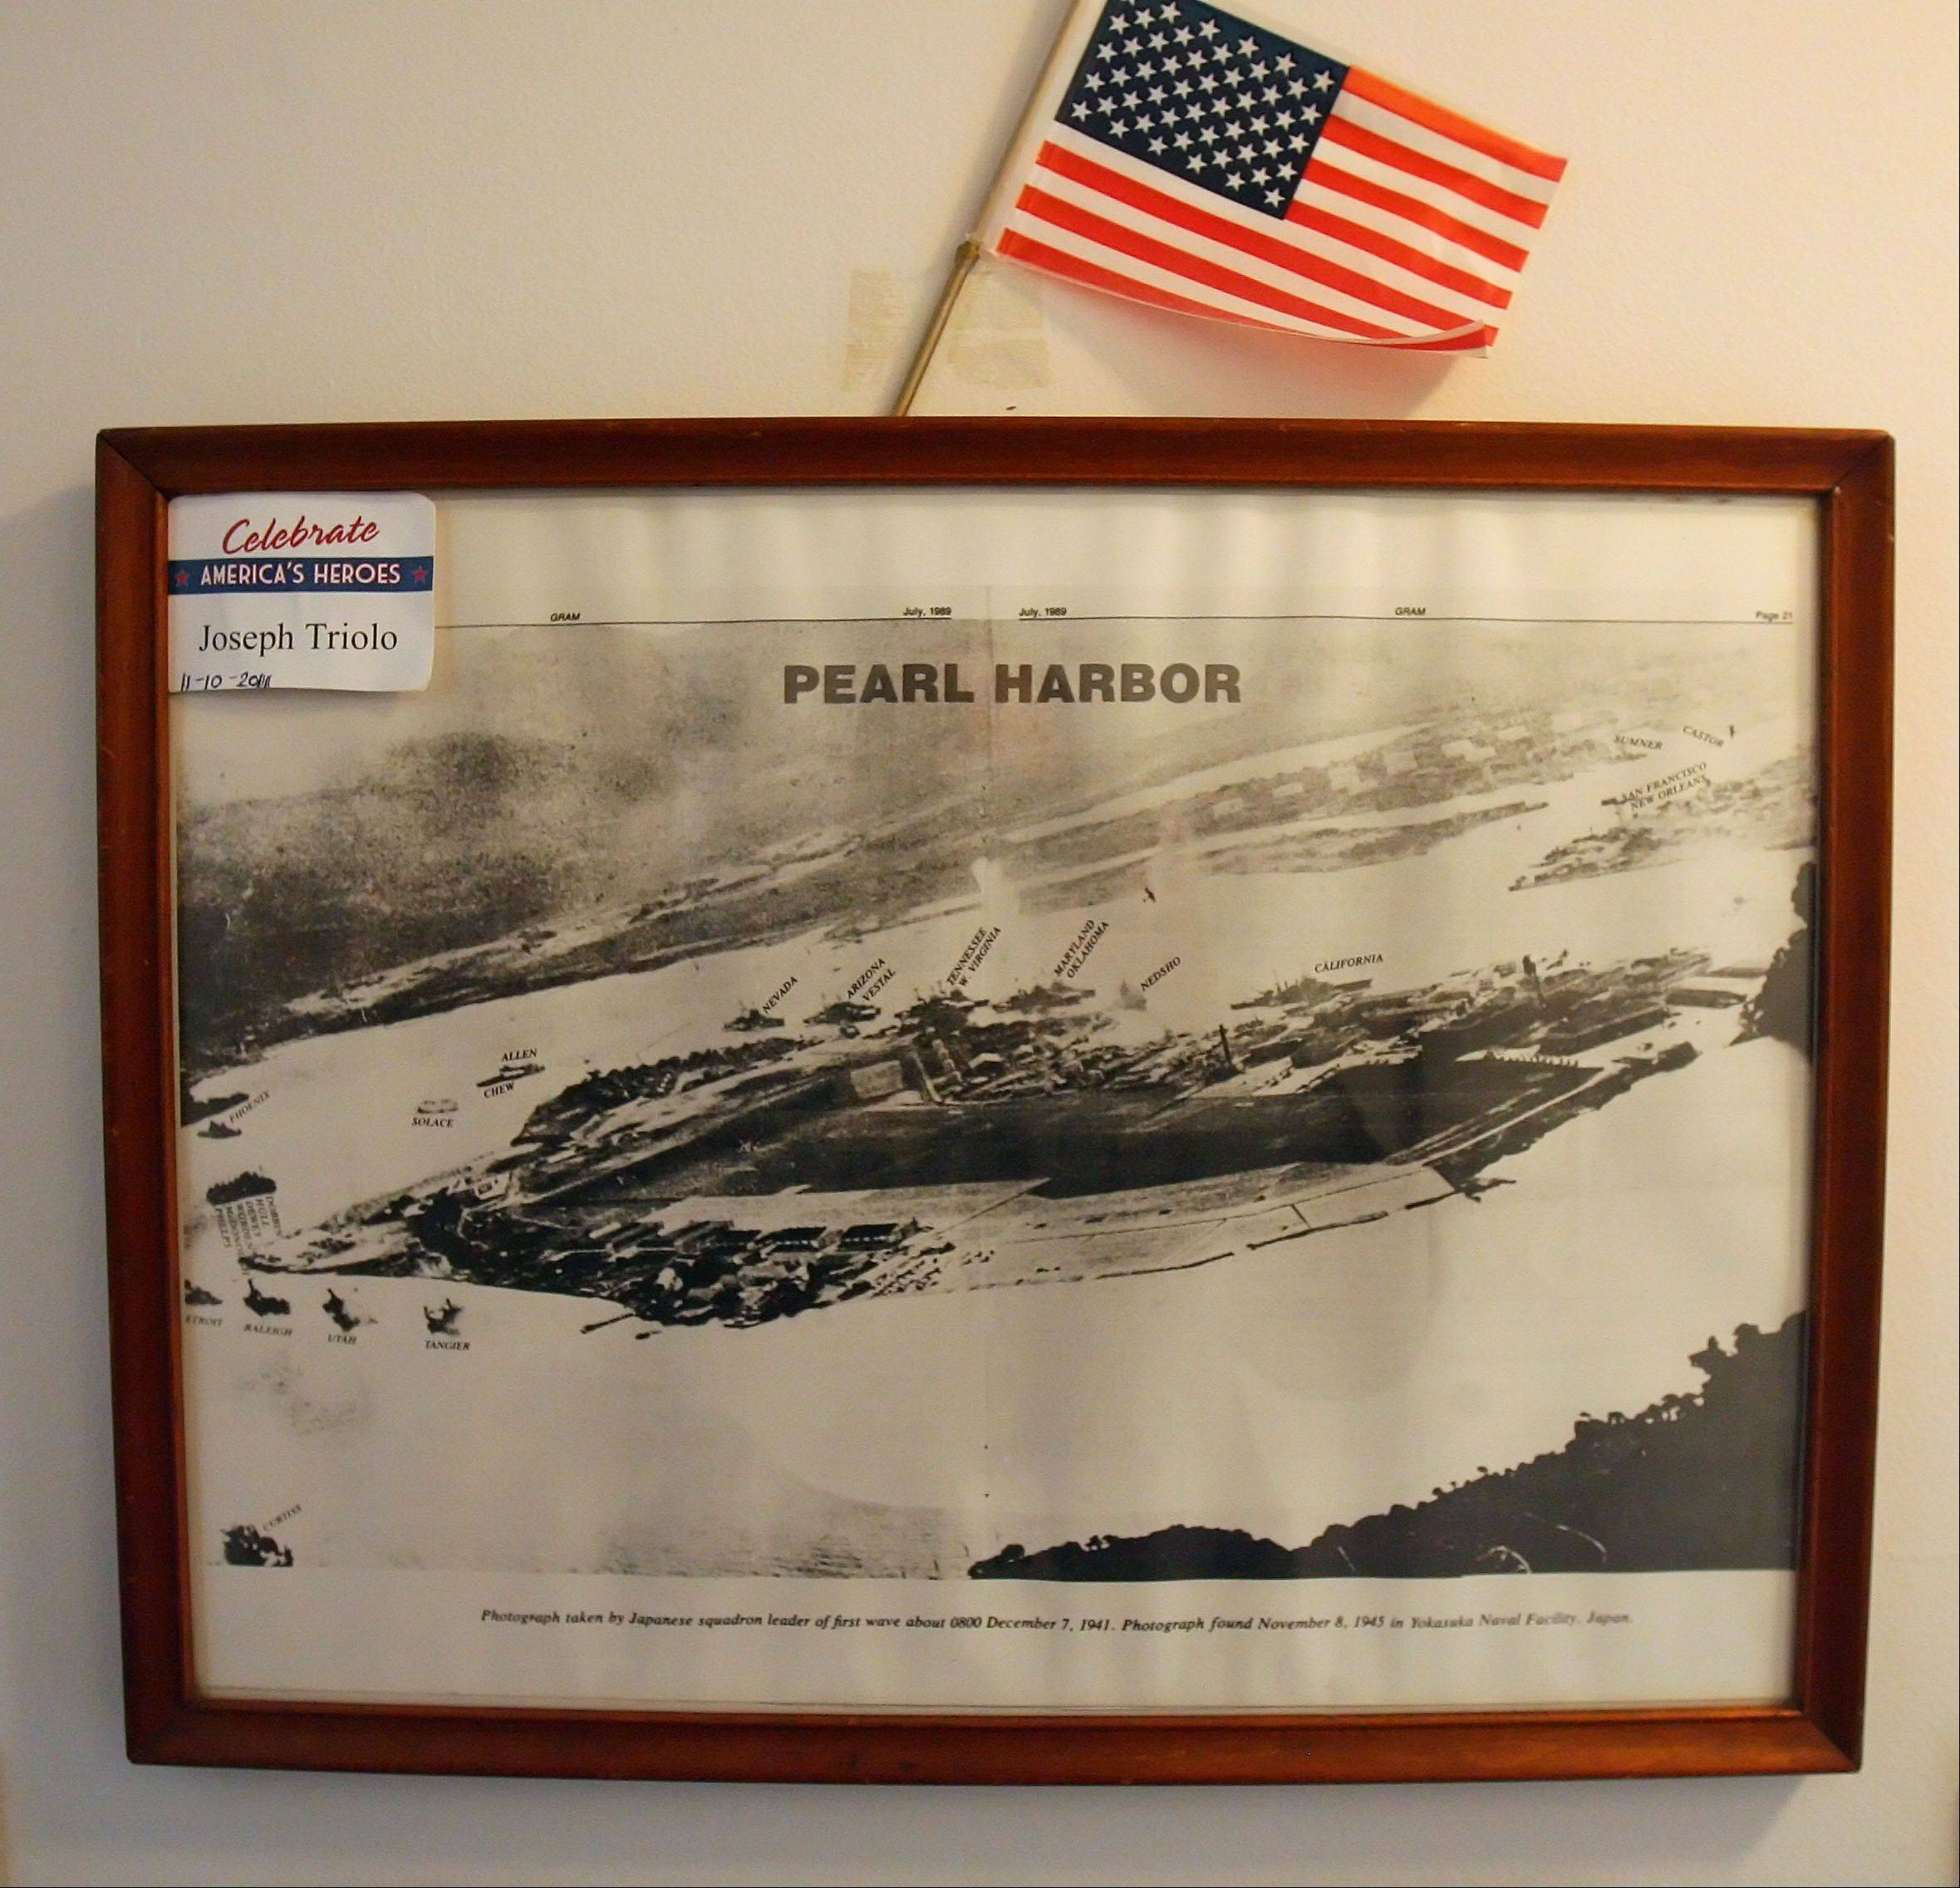 This replica photo of Pearl Harbor shot by a Japanese pilot hangs on the wall of Joe Triolo's Waukegan home. The 92-year-old Pearl Harbor survivor will attend an event today in Des Plaines commemorating the 71st anniversary of the attack.